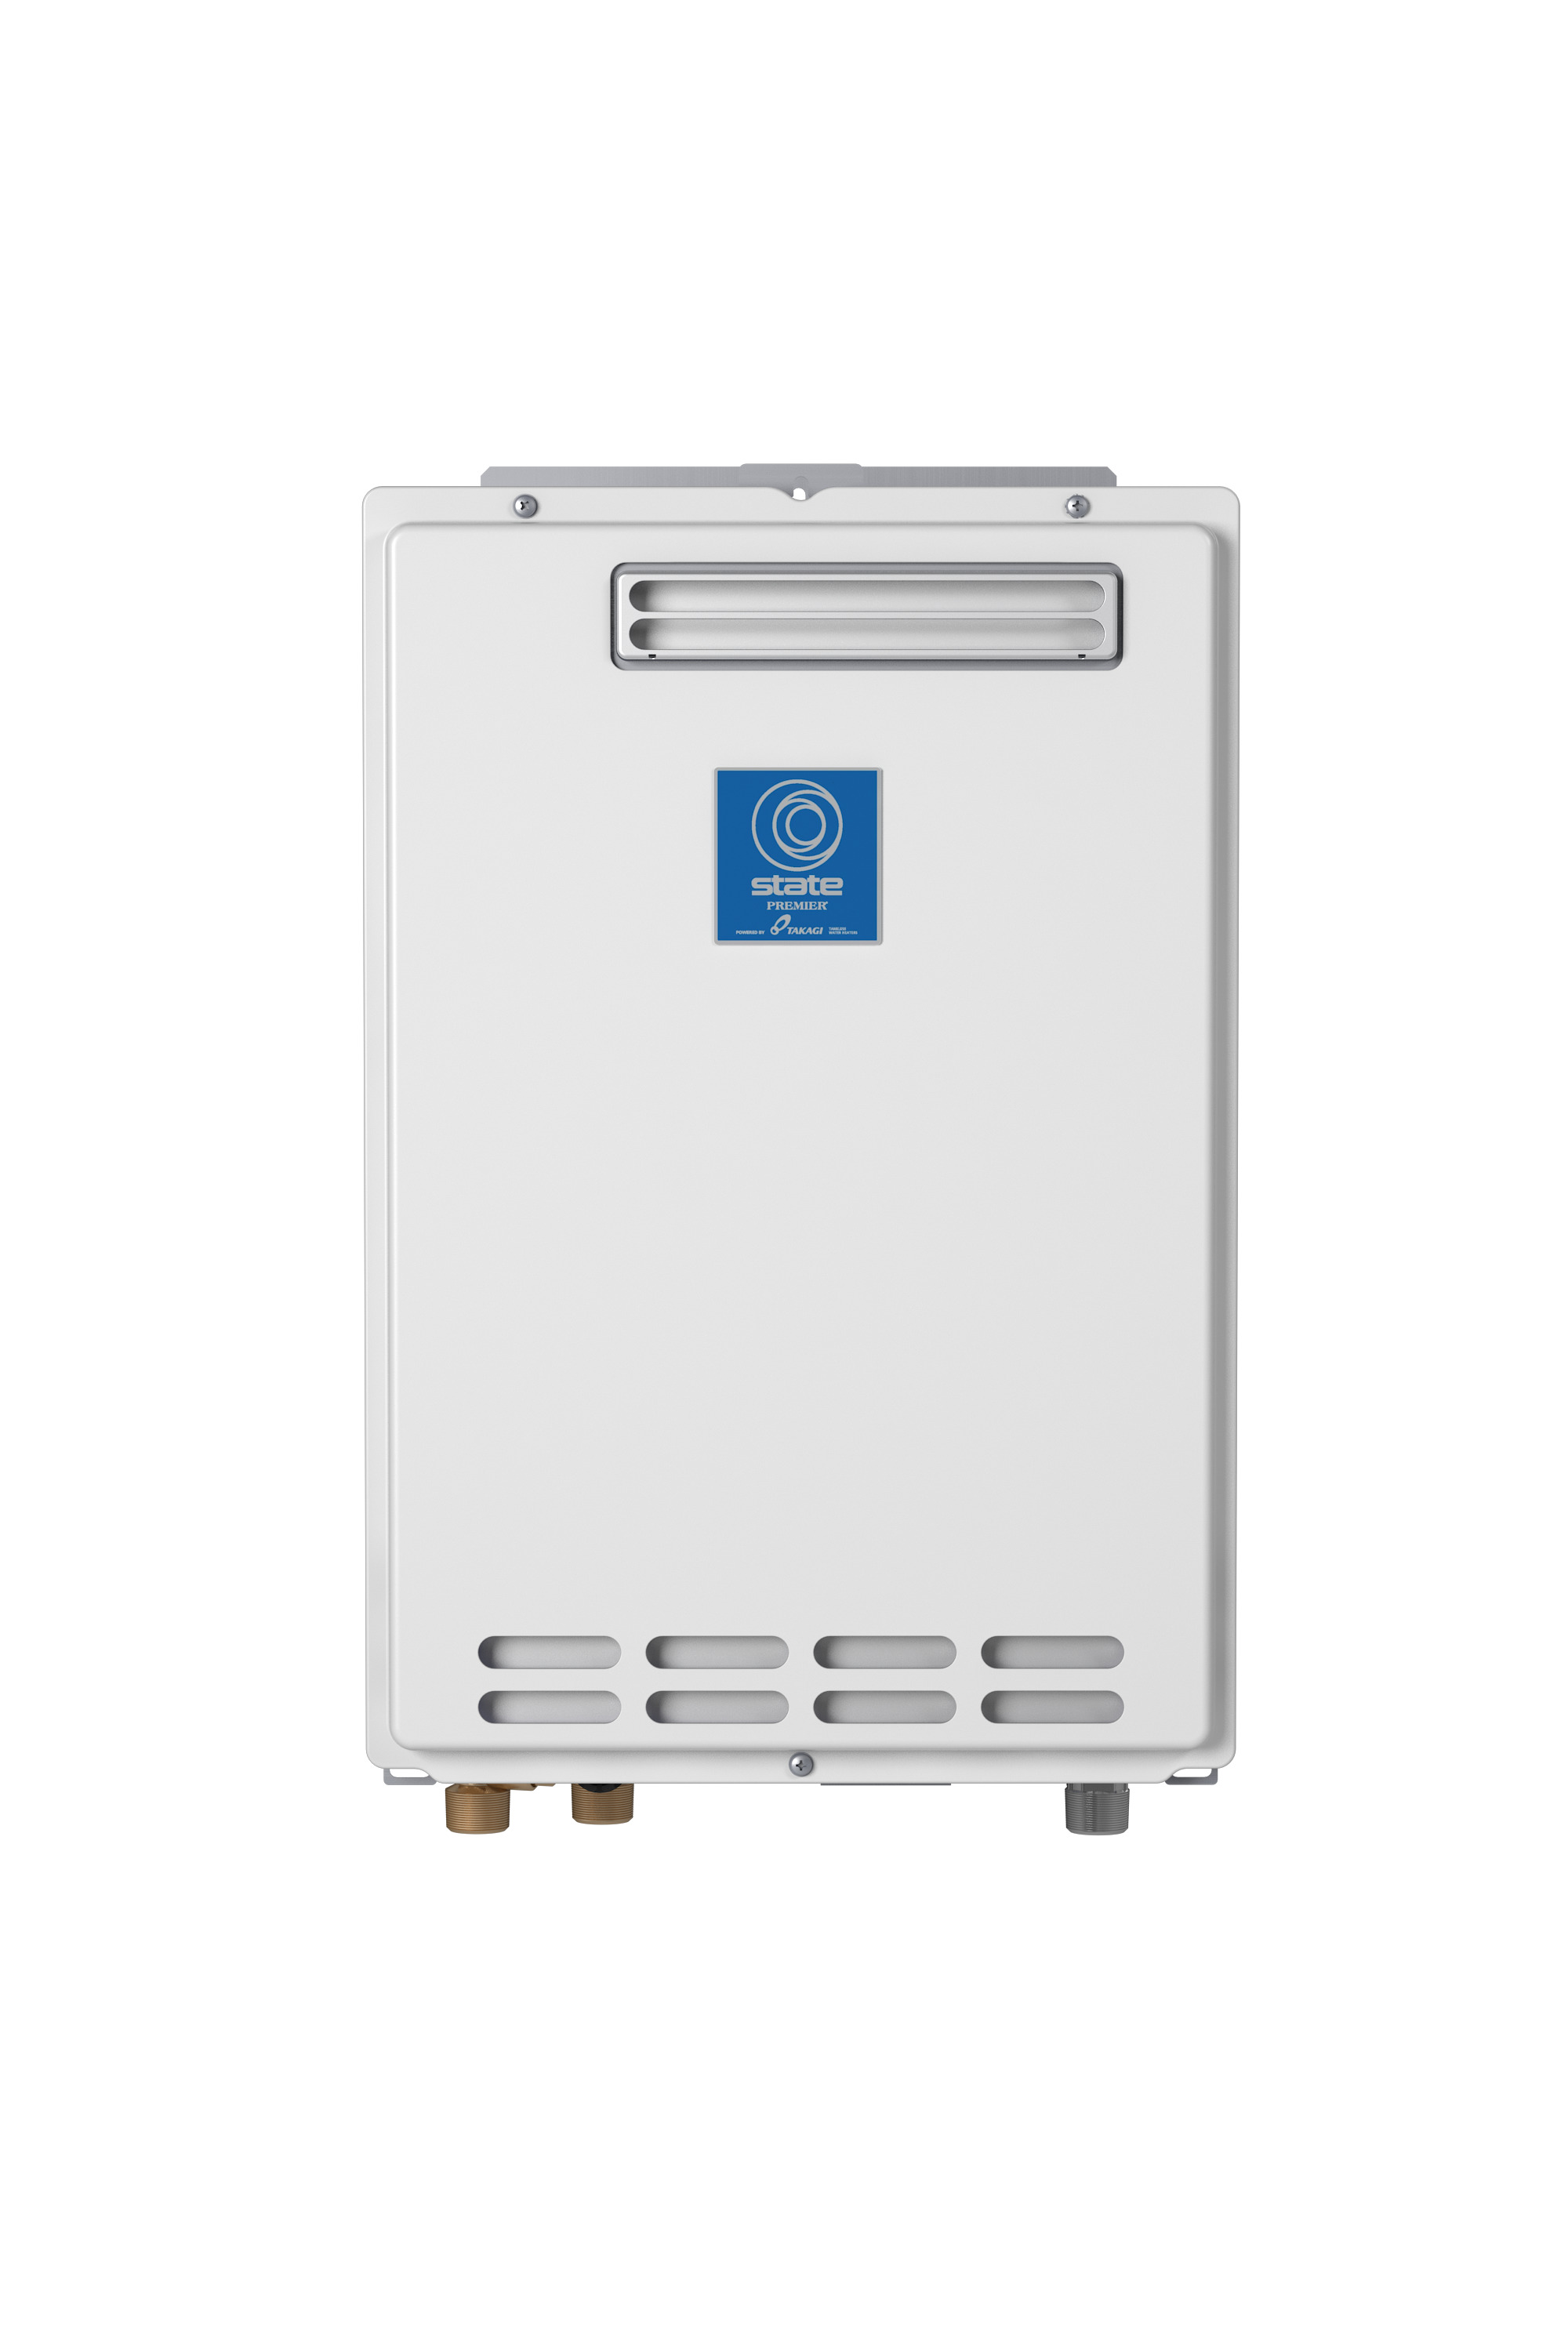 STATE GTS-110-PE NON CONDENSING OUTDOOR TANKLESS